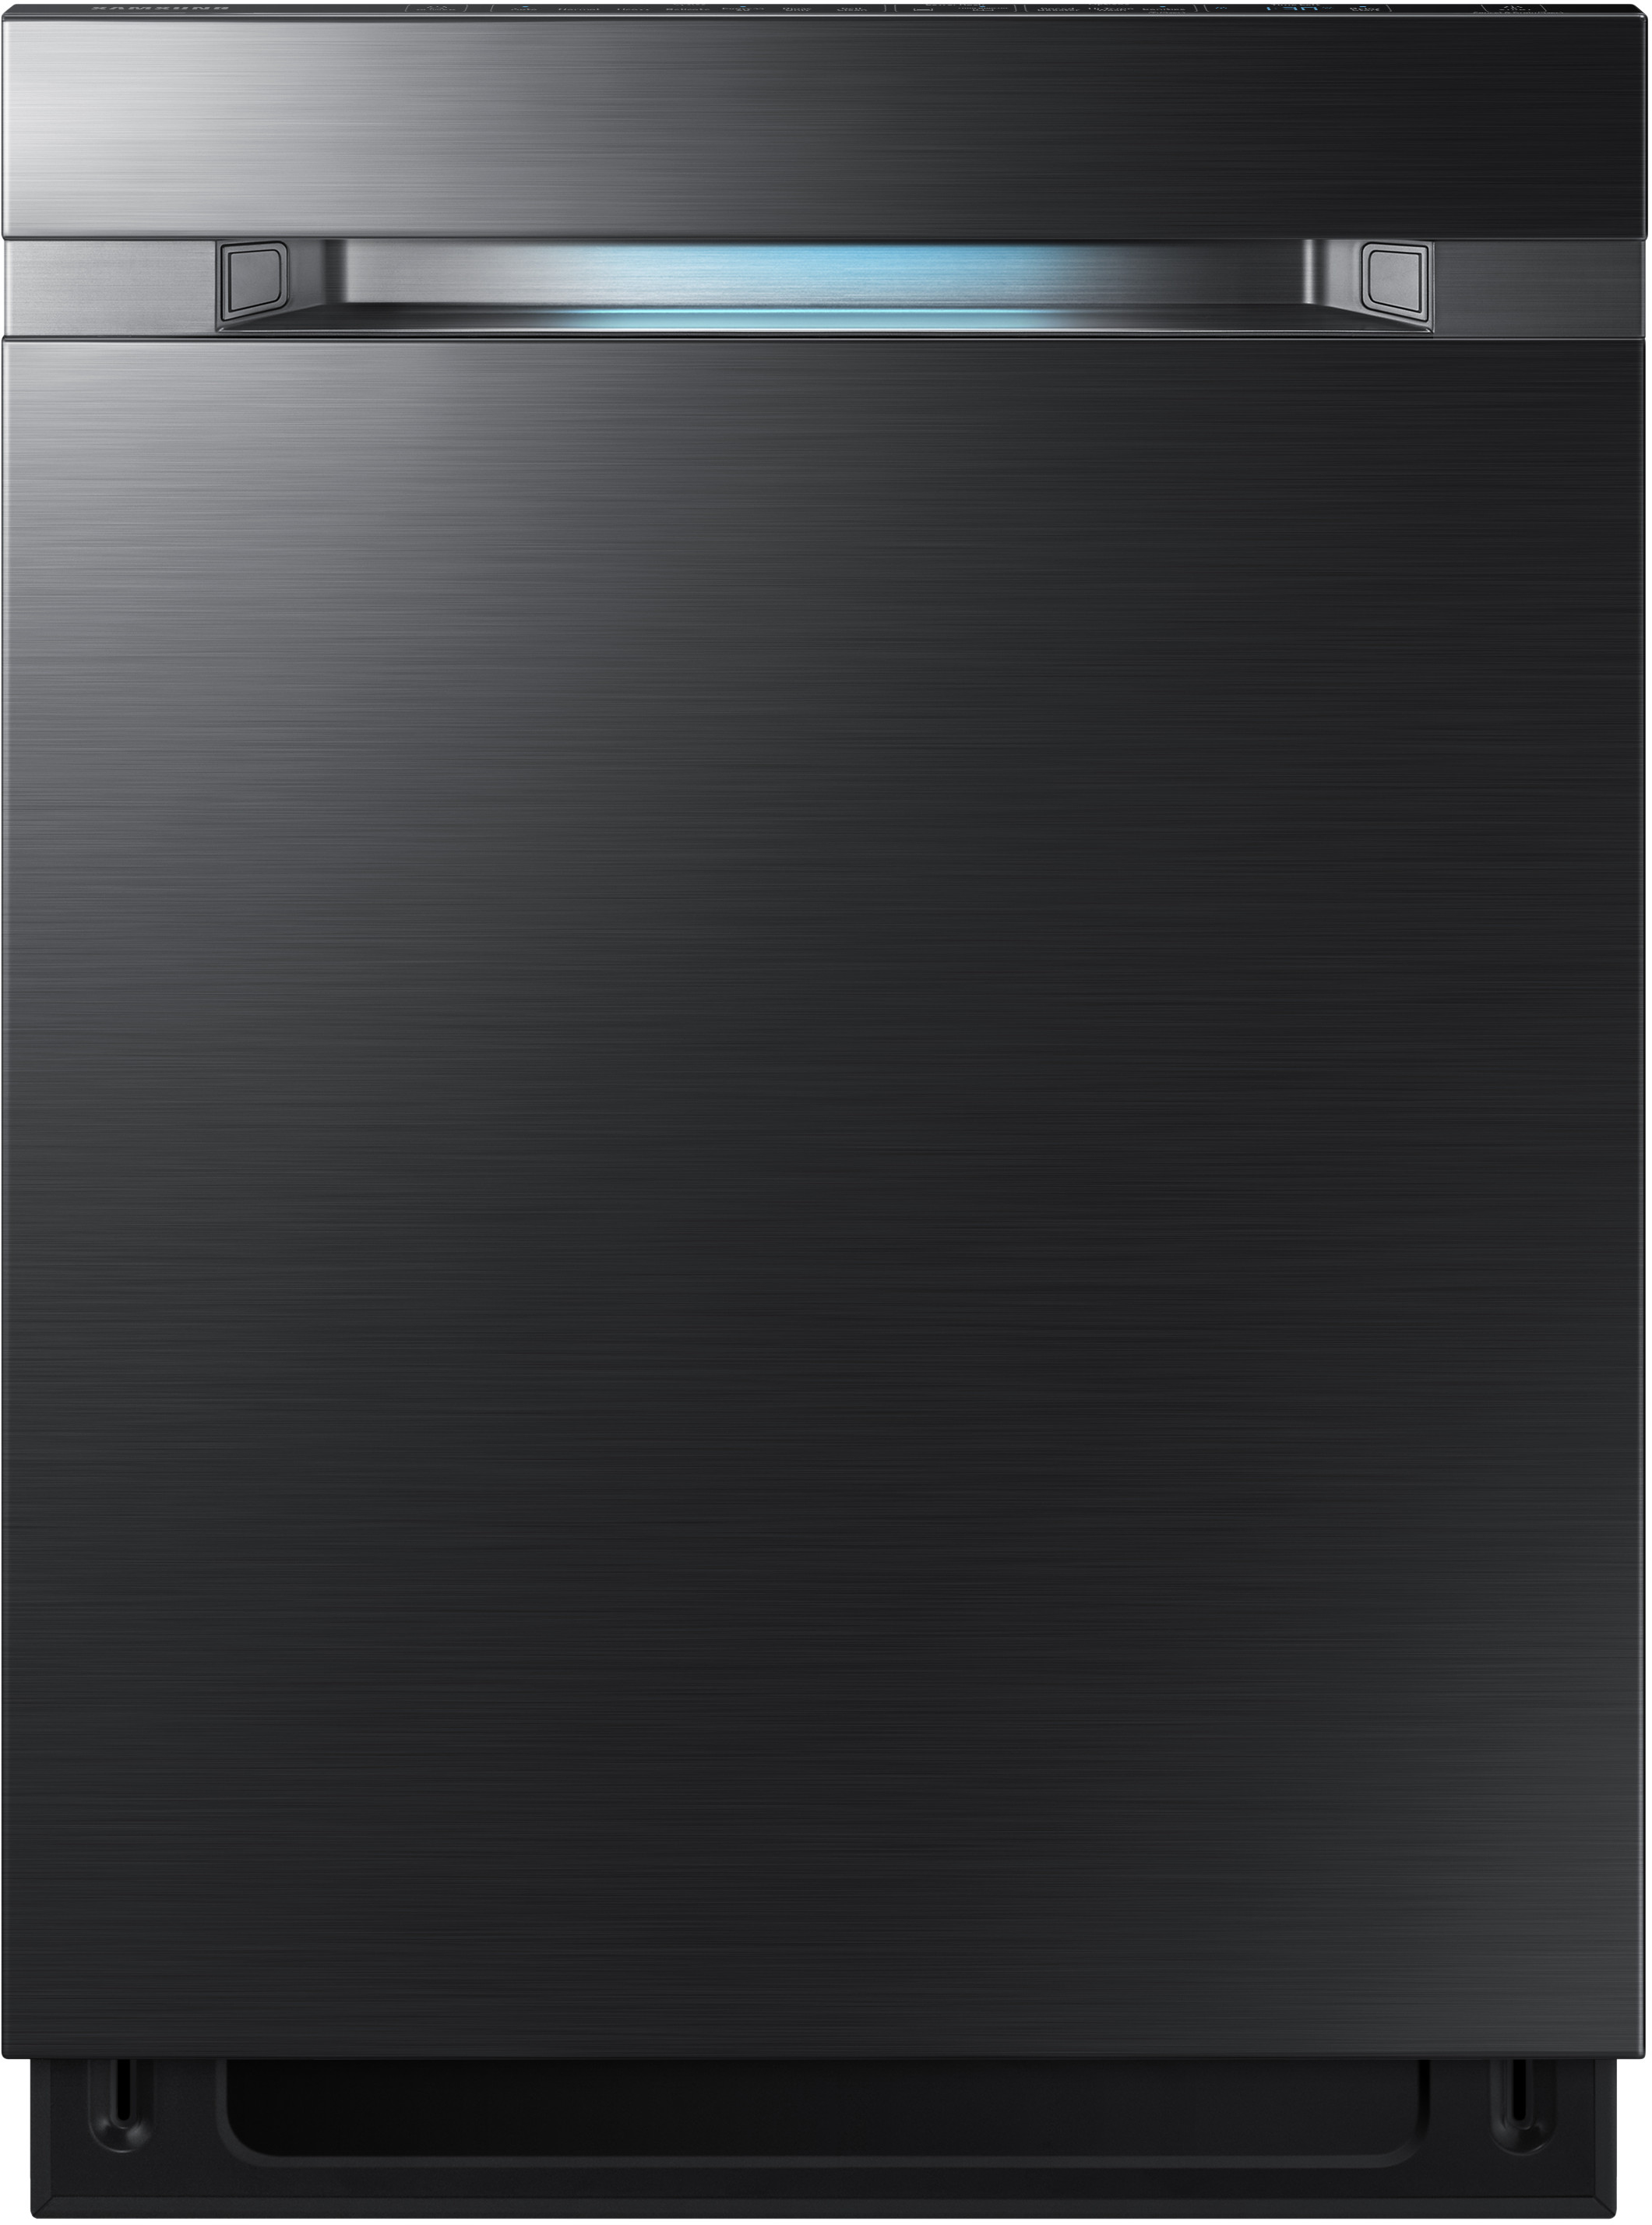 Samsung Dw80m9550ug Fully Integrated Dishwasher With Waterwall Autorelease Door Zone Booster Express 60 Cutlery Caddy Adjustable Rack Digital Leakage Sensor 15 Place Setting Capacity 42 Dba Silence Rating Child Lock And Energy